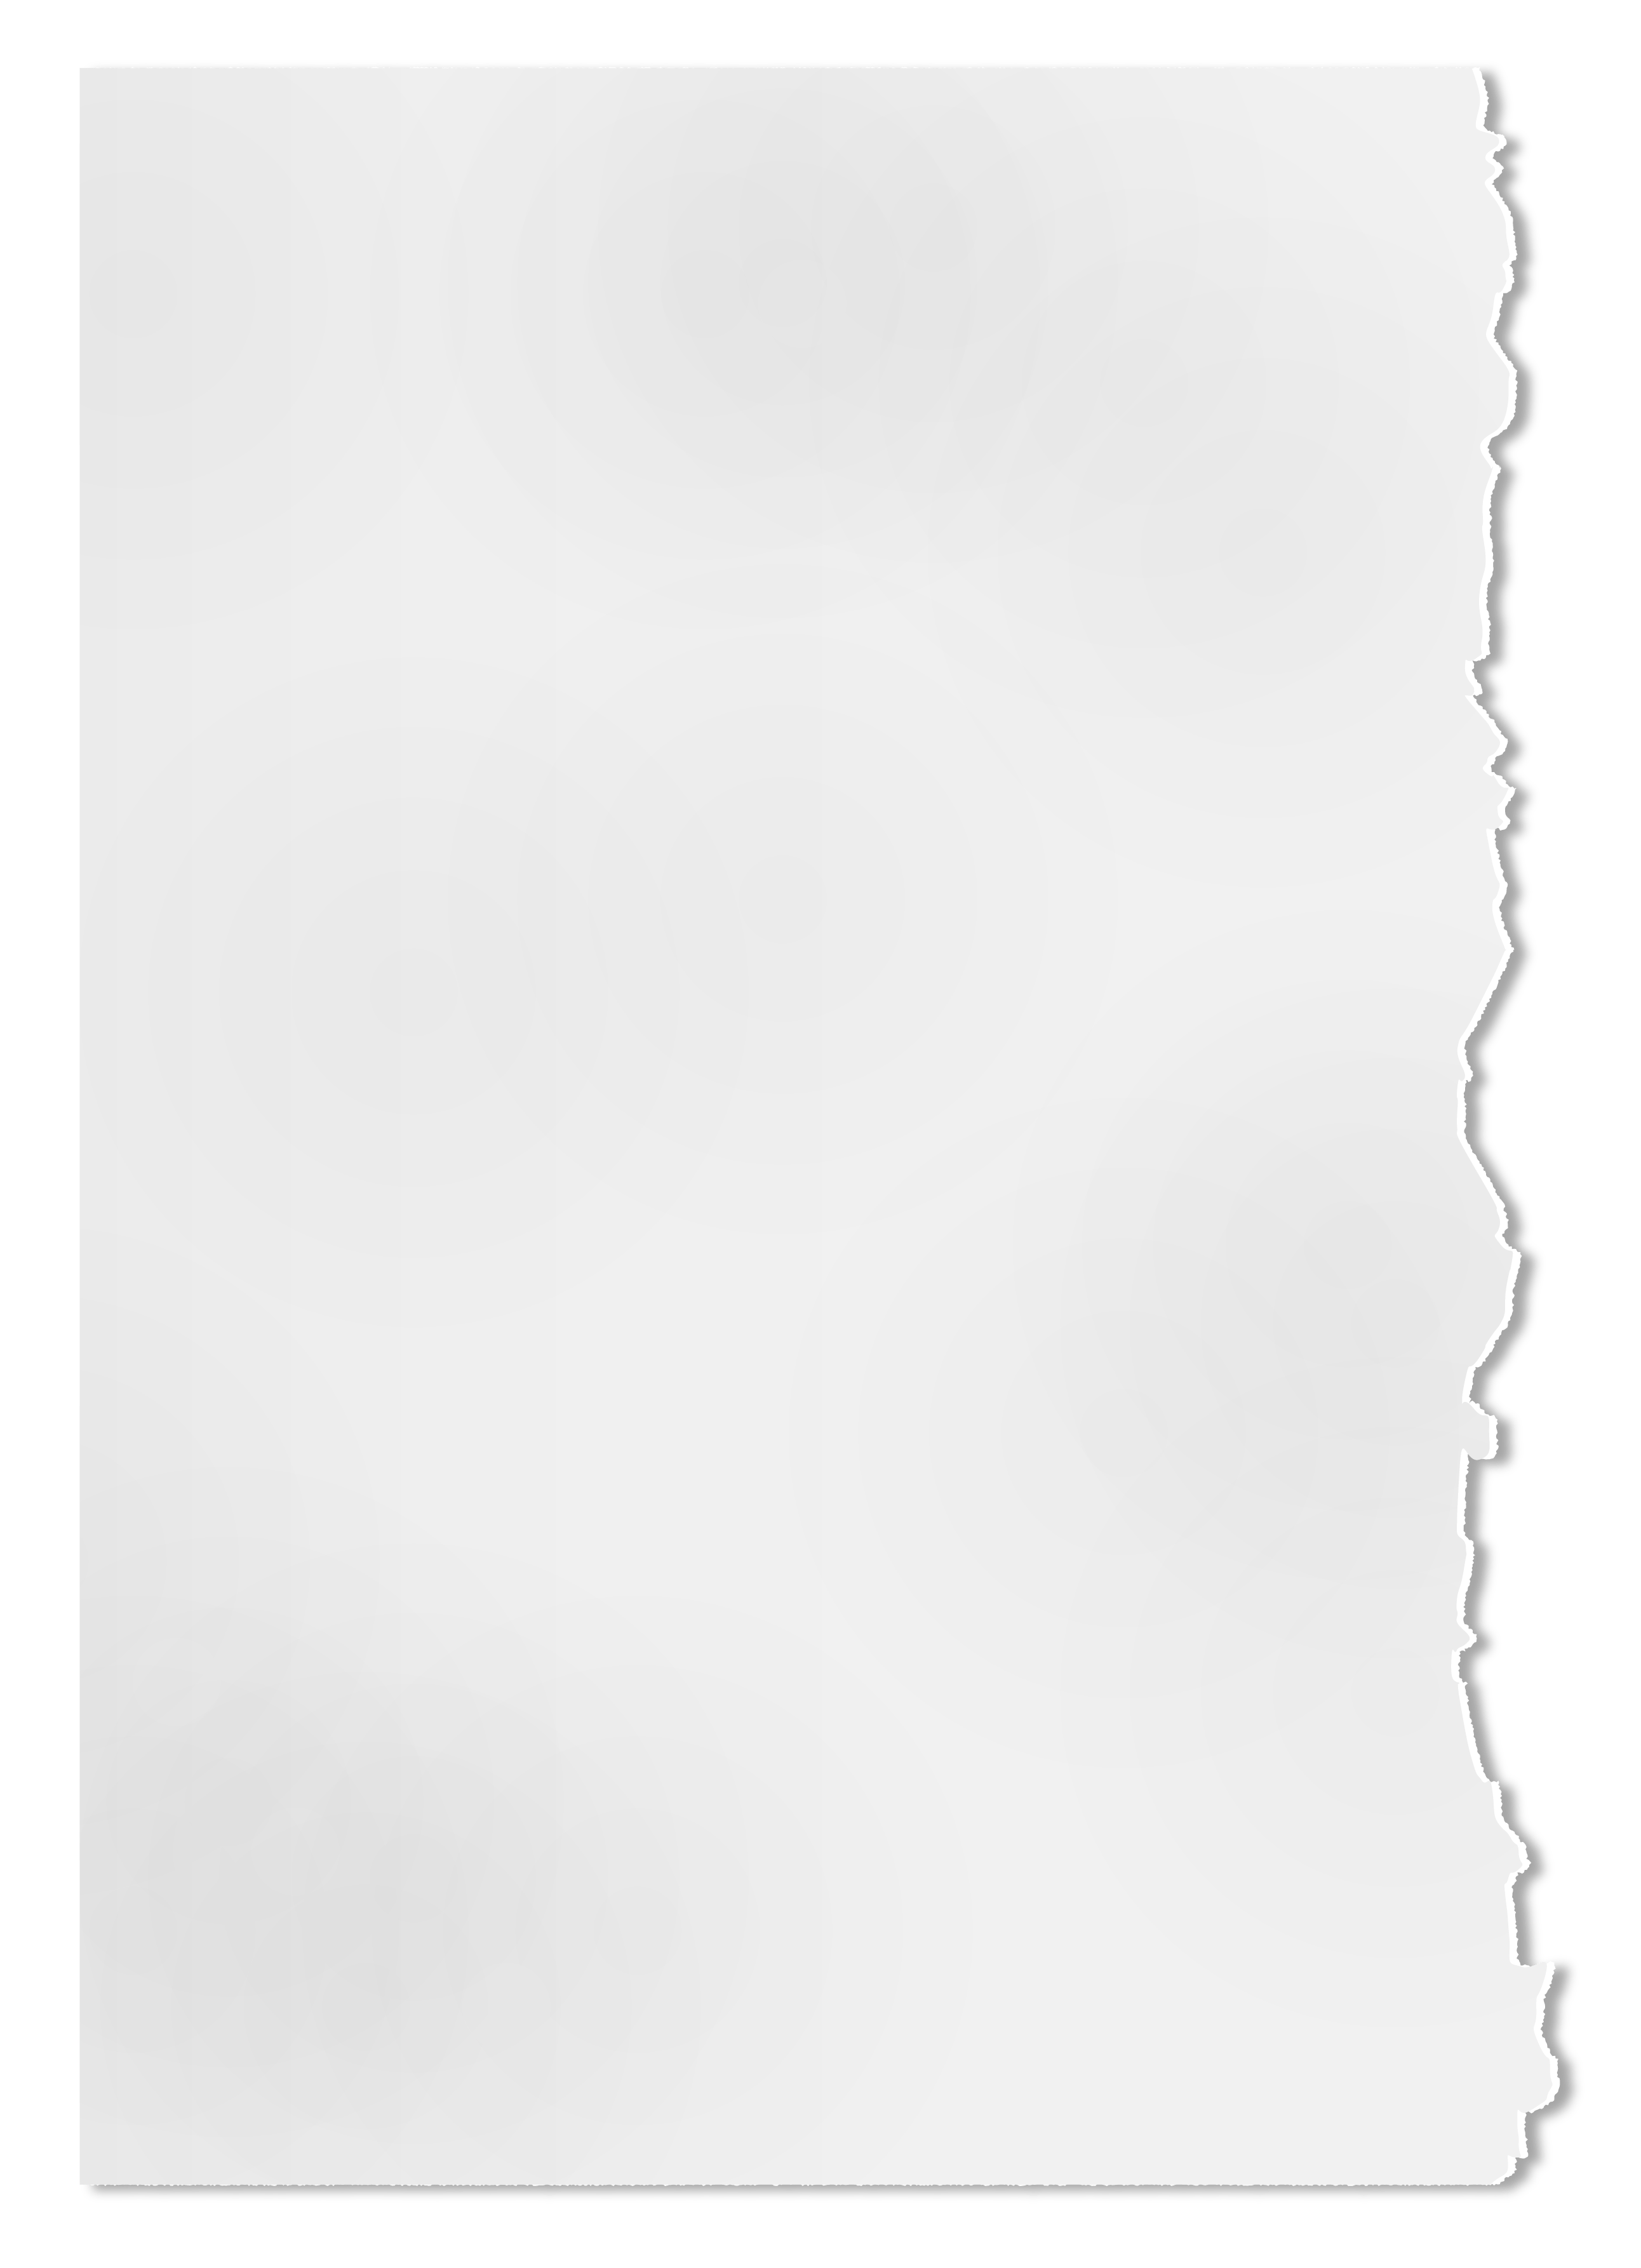 graphic royalty free stock Torn paper edges real. Ripped vector